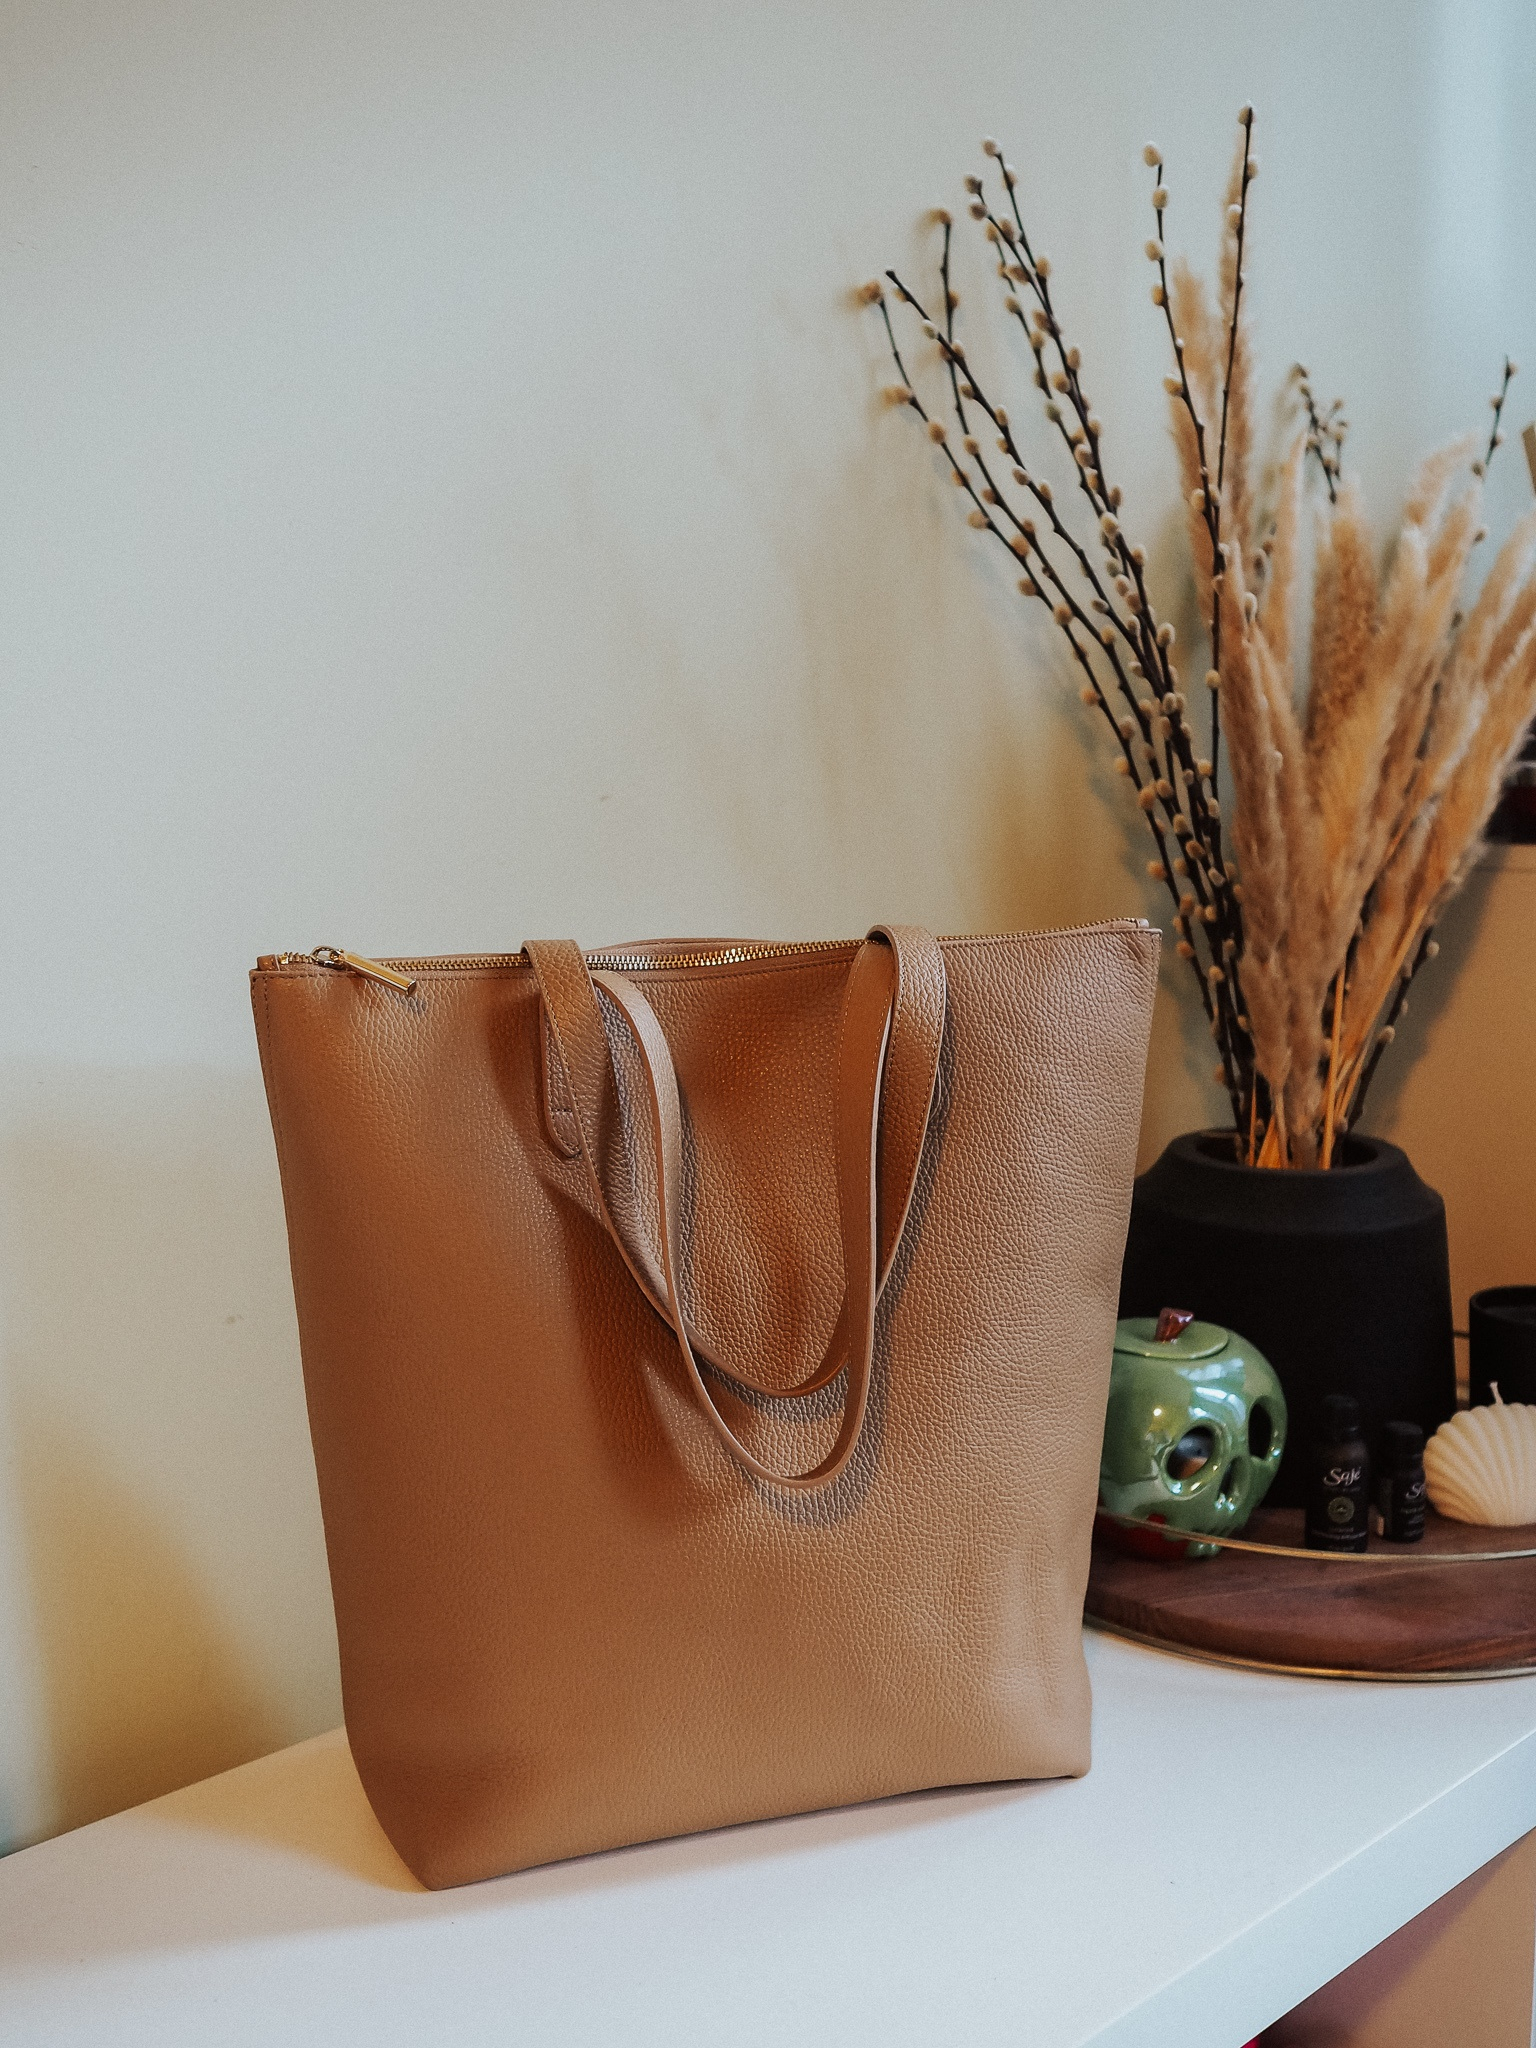 Trying to choose the best Cuyana leather tote? Look no further than the Tall Structured Zipper Tote in this blog post review.